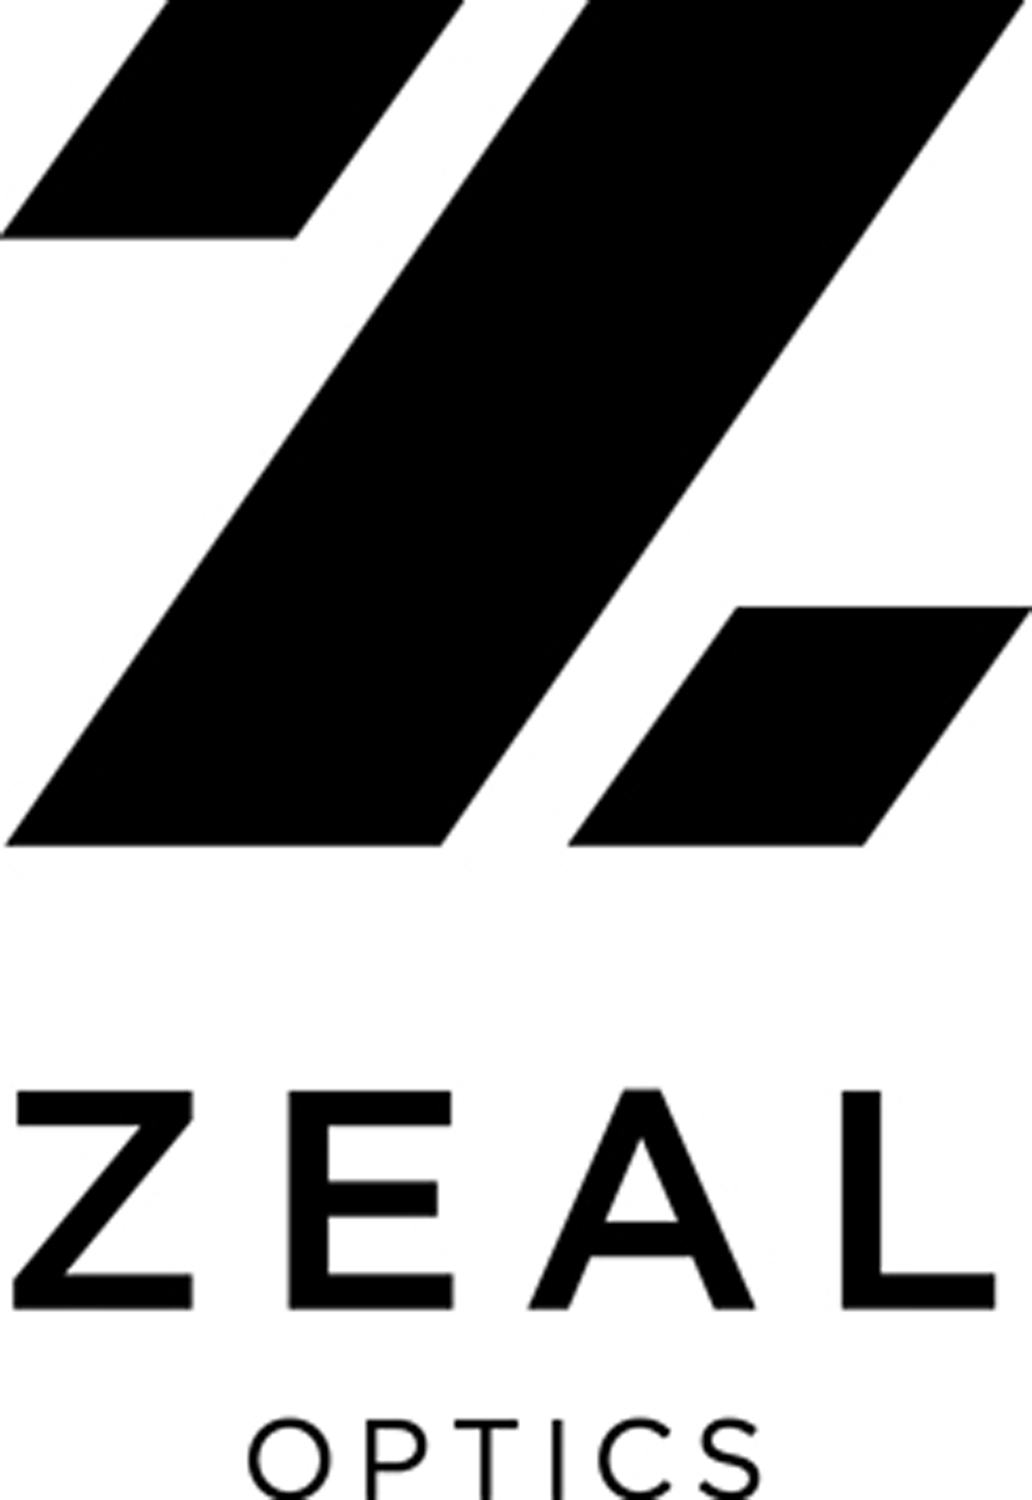 zeal_logo_blk-1500px.png